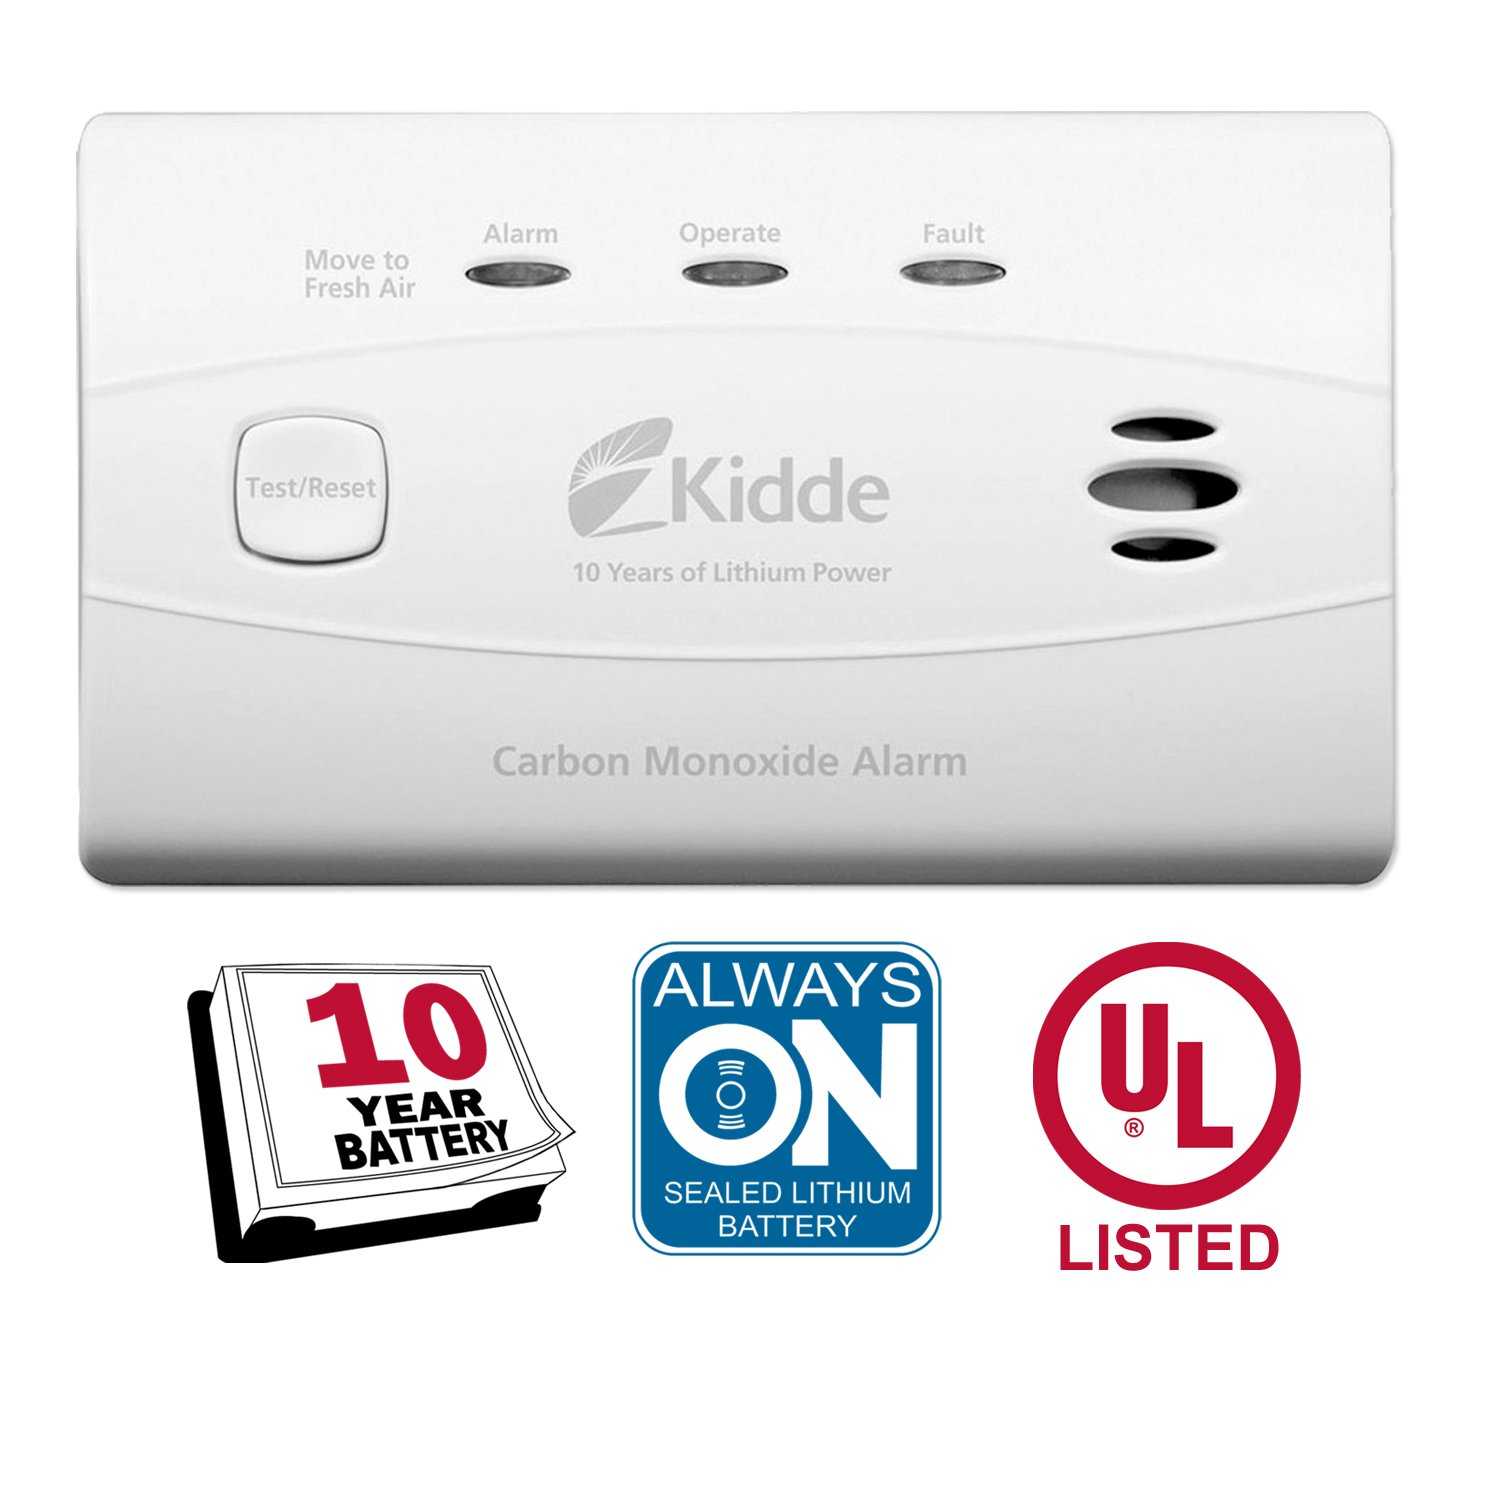 Kidde 21010045 C3010 Worry-Free Carbon Monoxide Alarm with 10 Year Sealed Battery